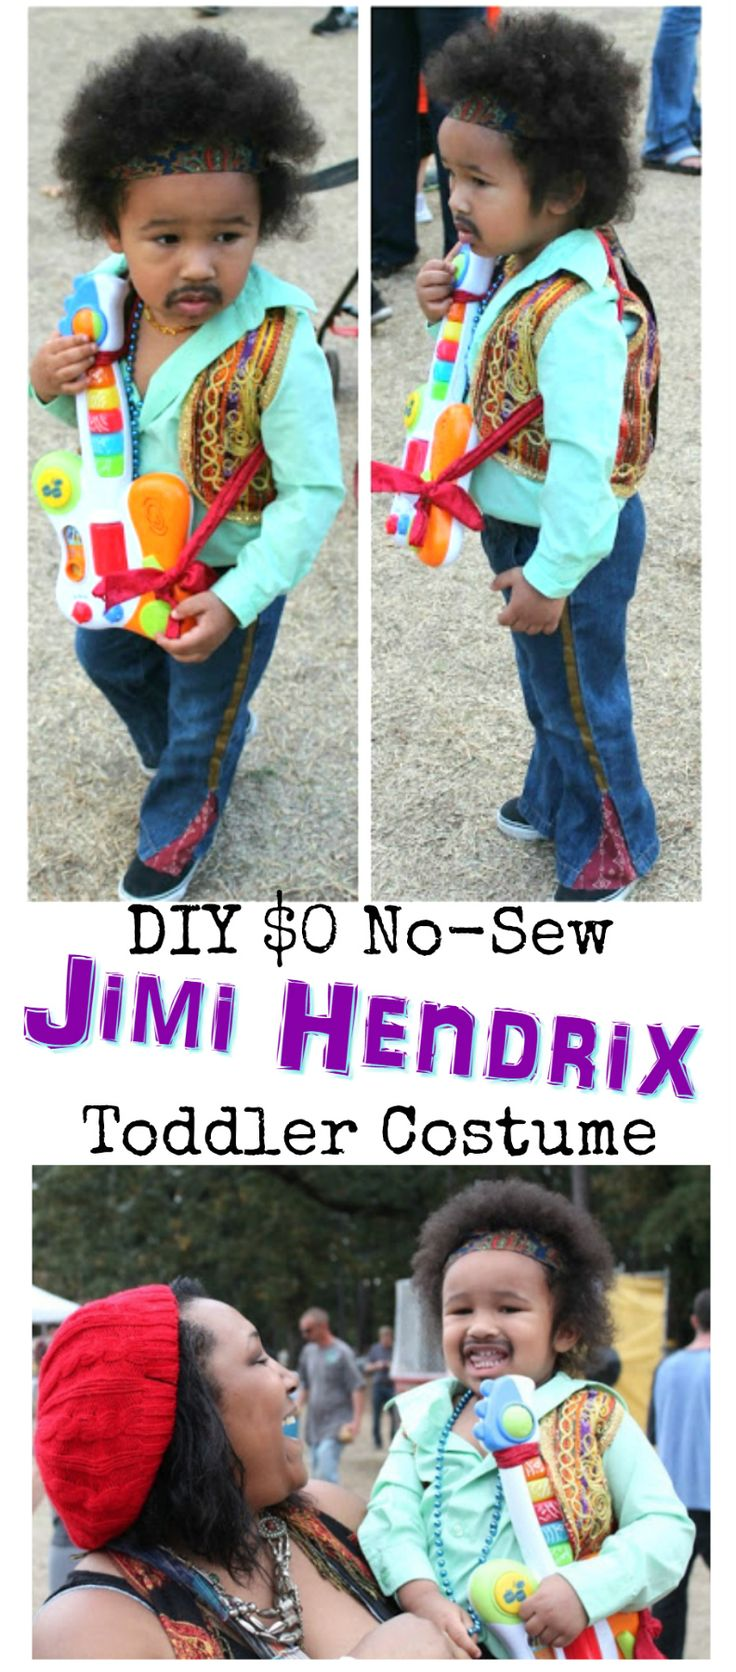 DIY $0 No-Sew Jimi Hendrix Toddler Halloween Costume